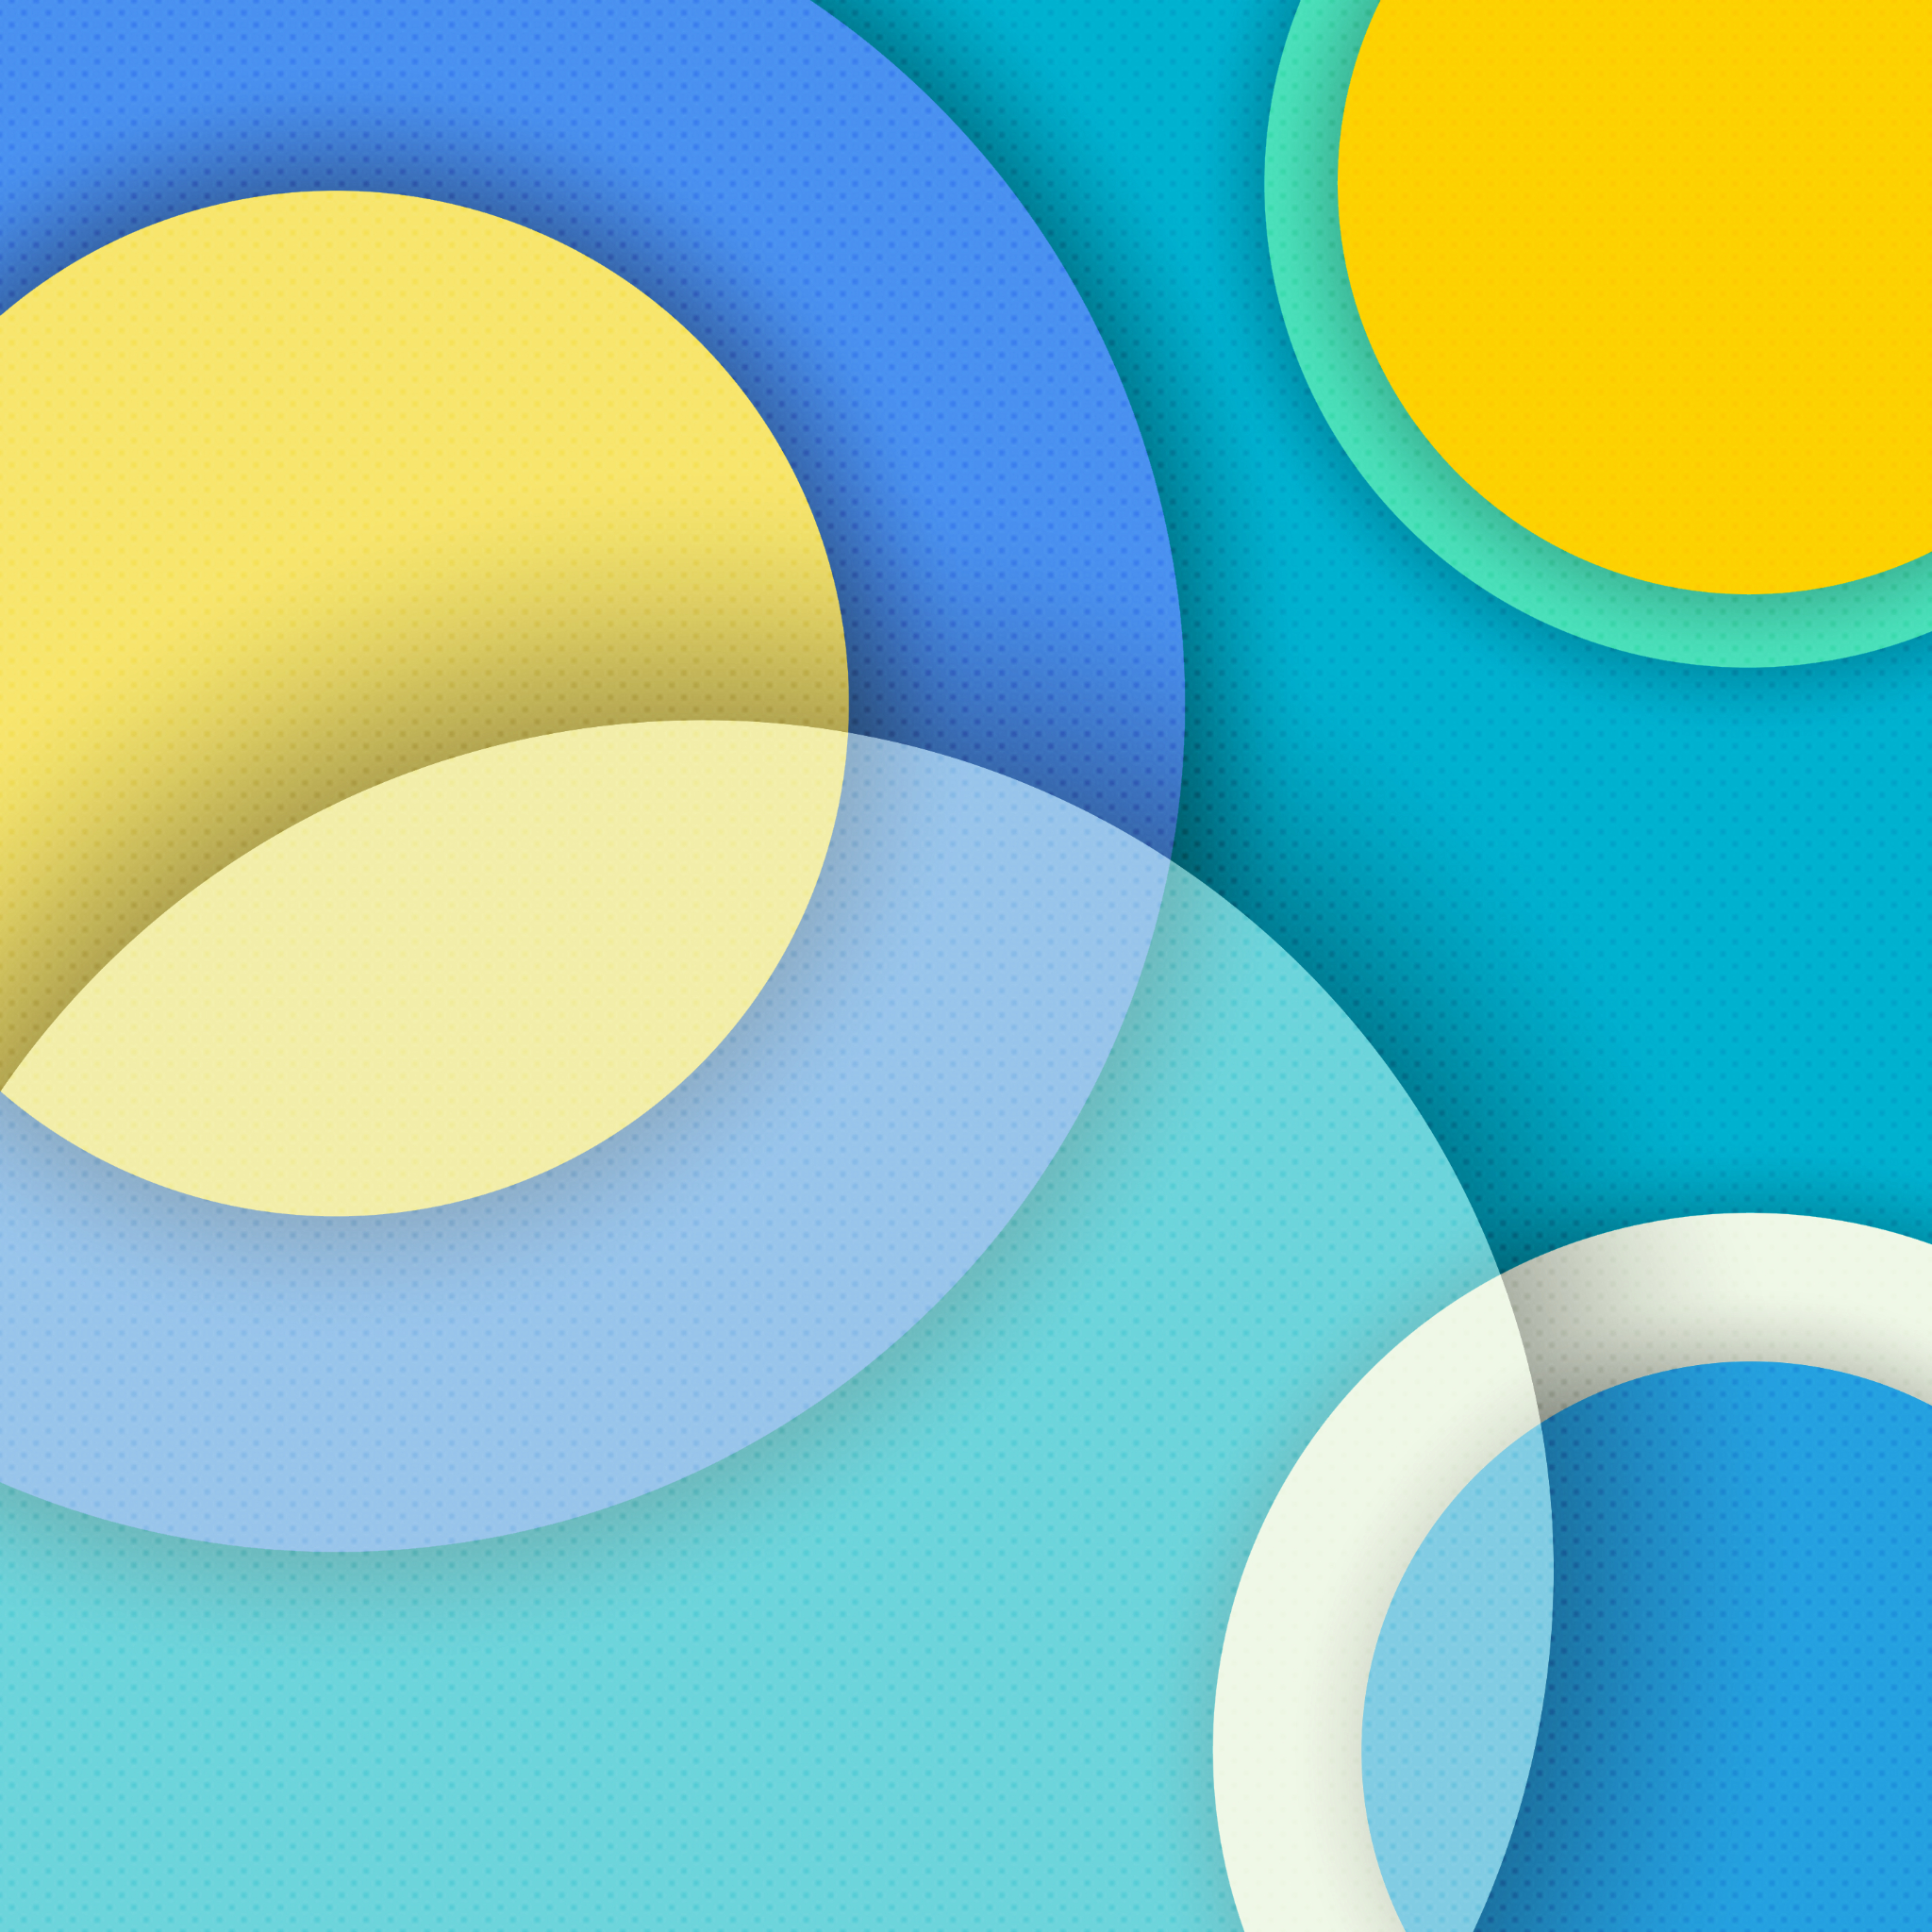 credit ankit anand the post download 11 lollipop material design hd wallpapers